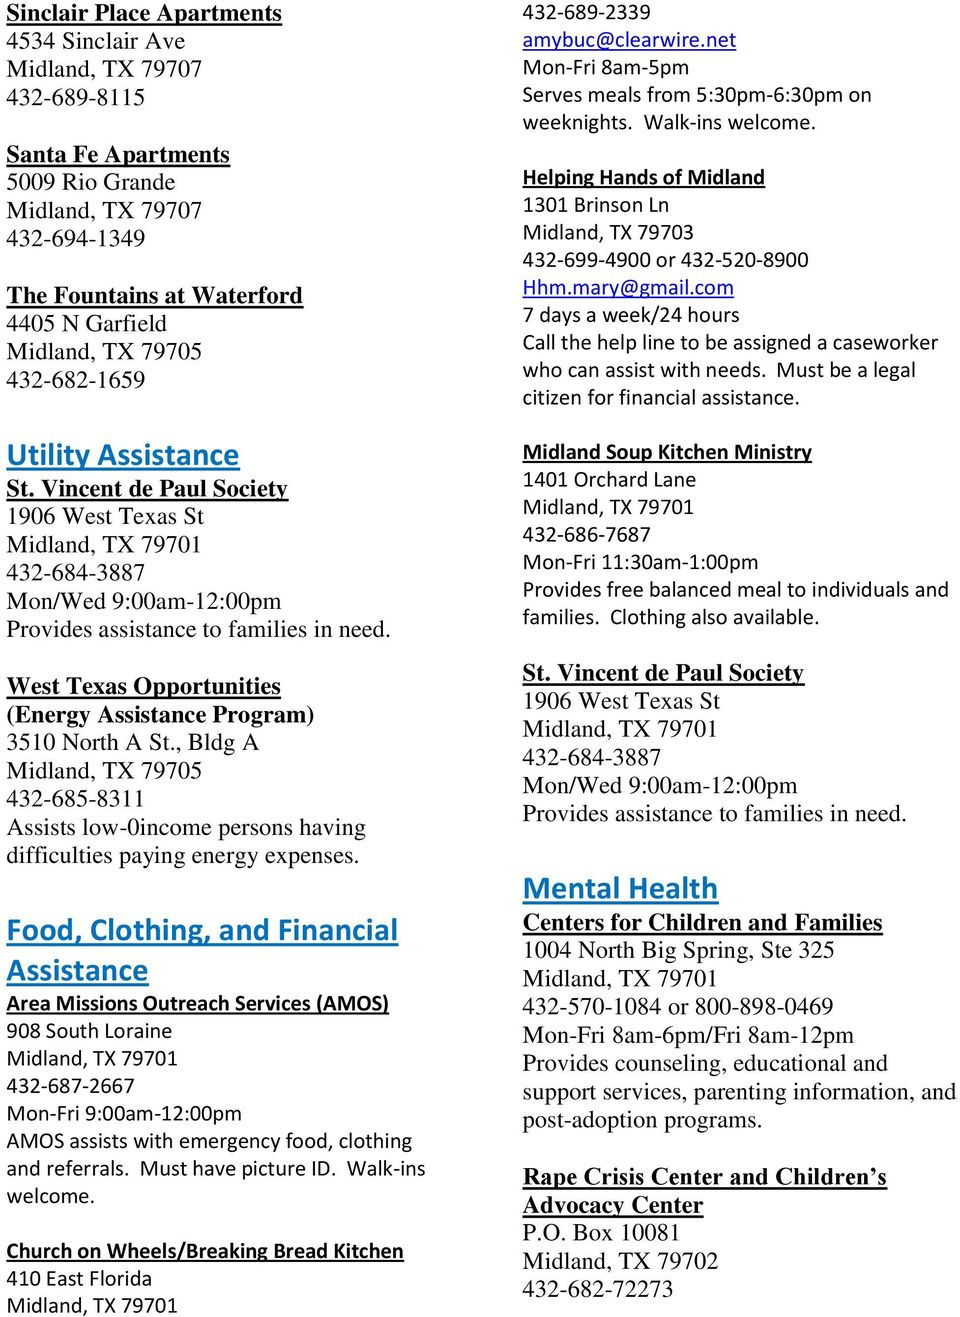 West Texas Opportunities (Energy Assistance Program) 3510 North A St., Bldg A Midland, TX 79705 432-685-8311 Assists low-0income persons having difficulties paying energy expenses.